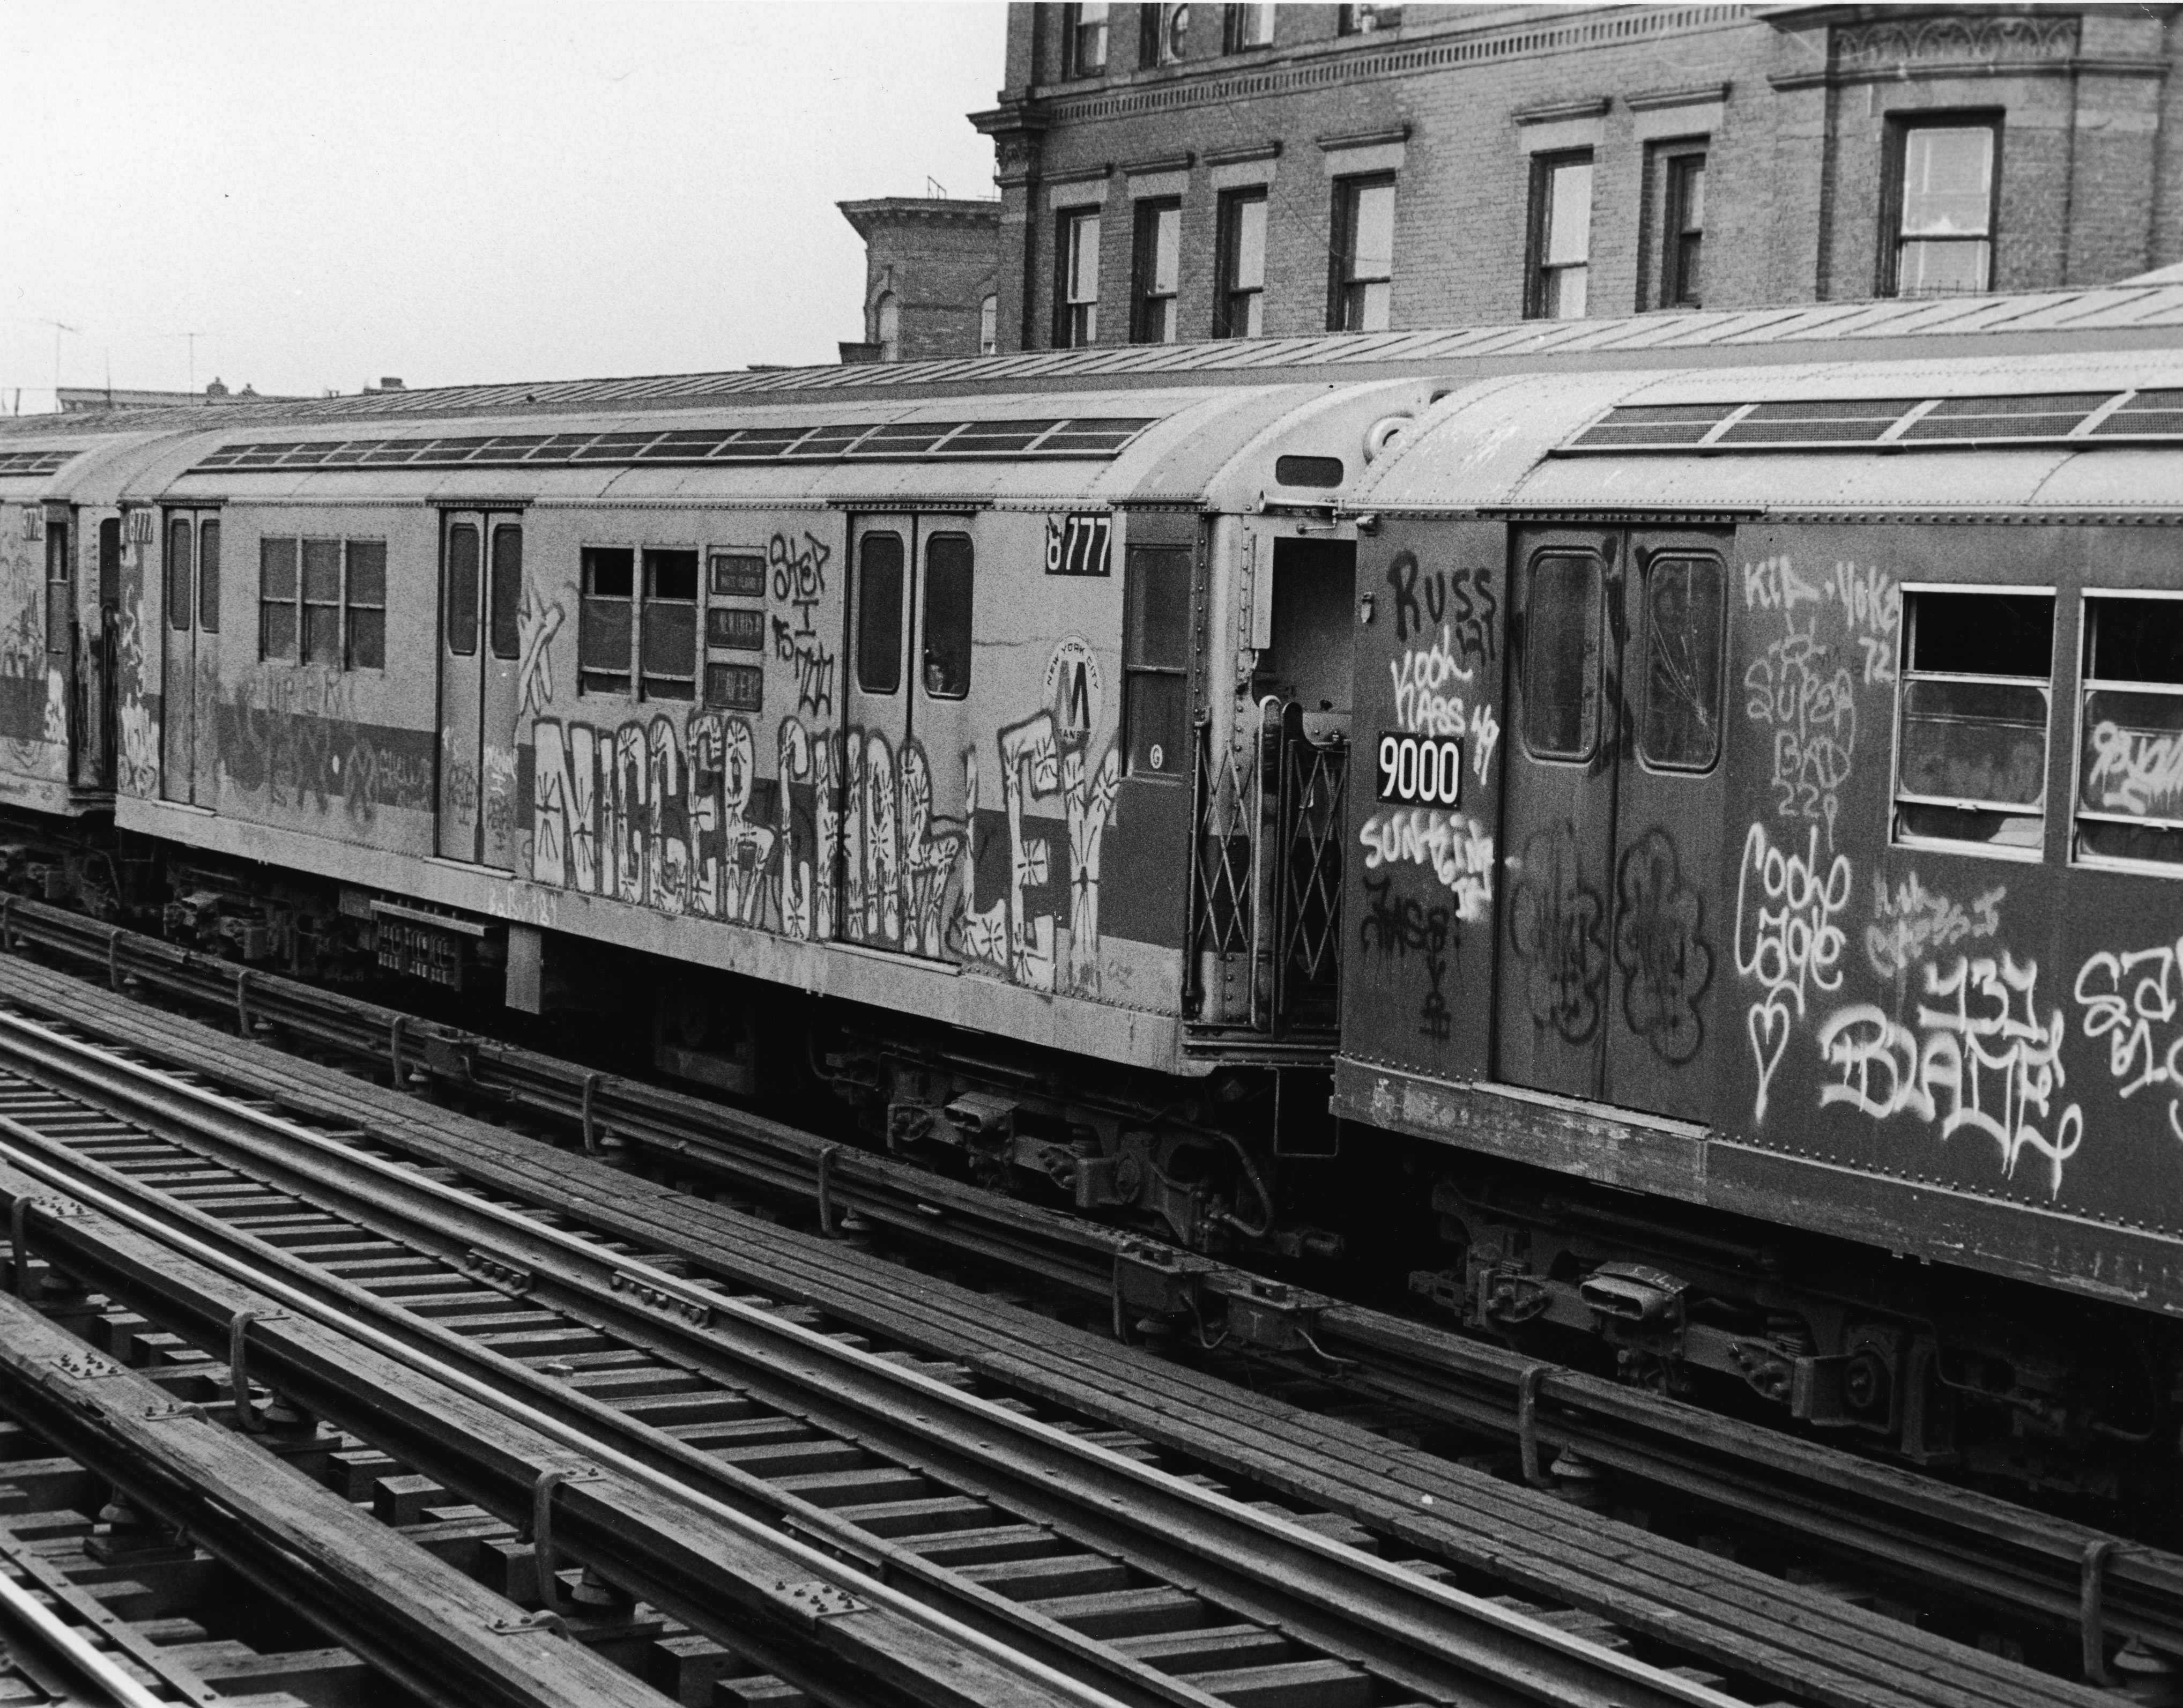 Exterior of subway cars painted with graffiti in the 1970s.